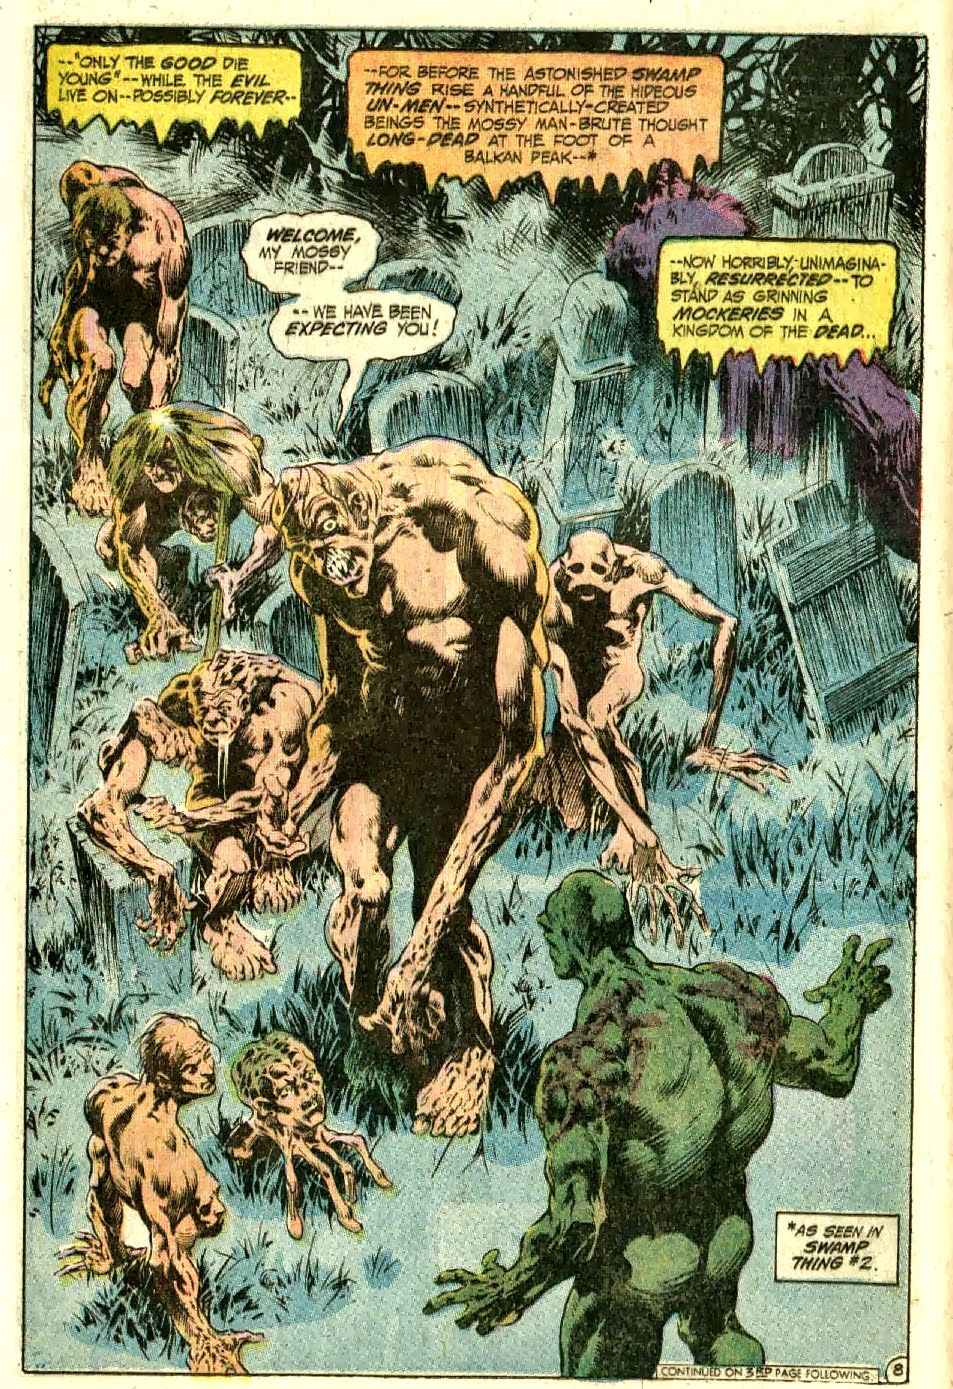 Swamp Thing Volume 01 Issue 10 by Bernie Wrightson | Bernie ...